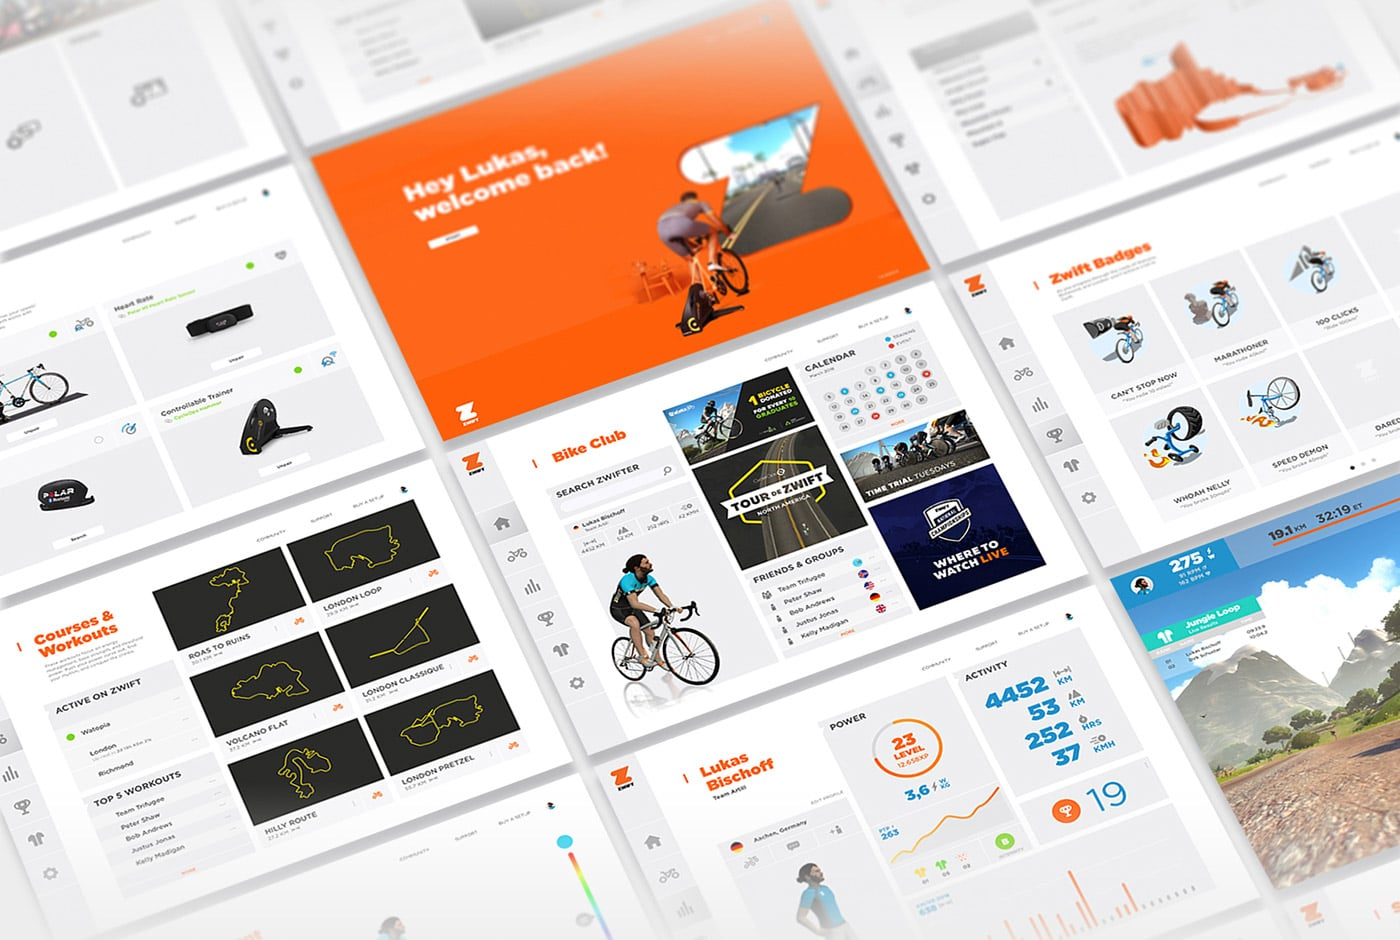 What do you think of this Zwift design concept?